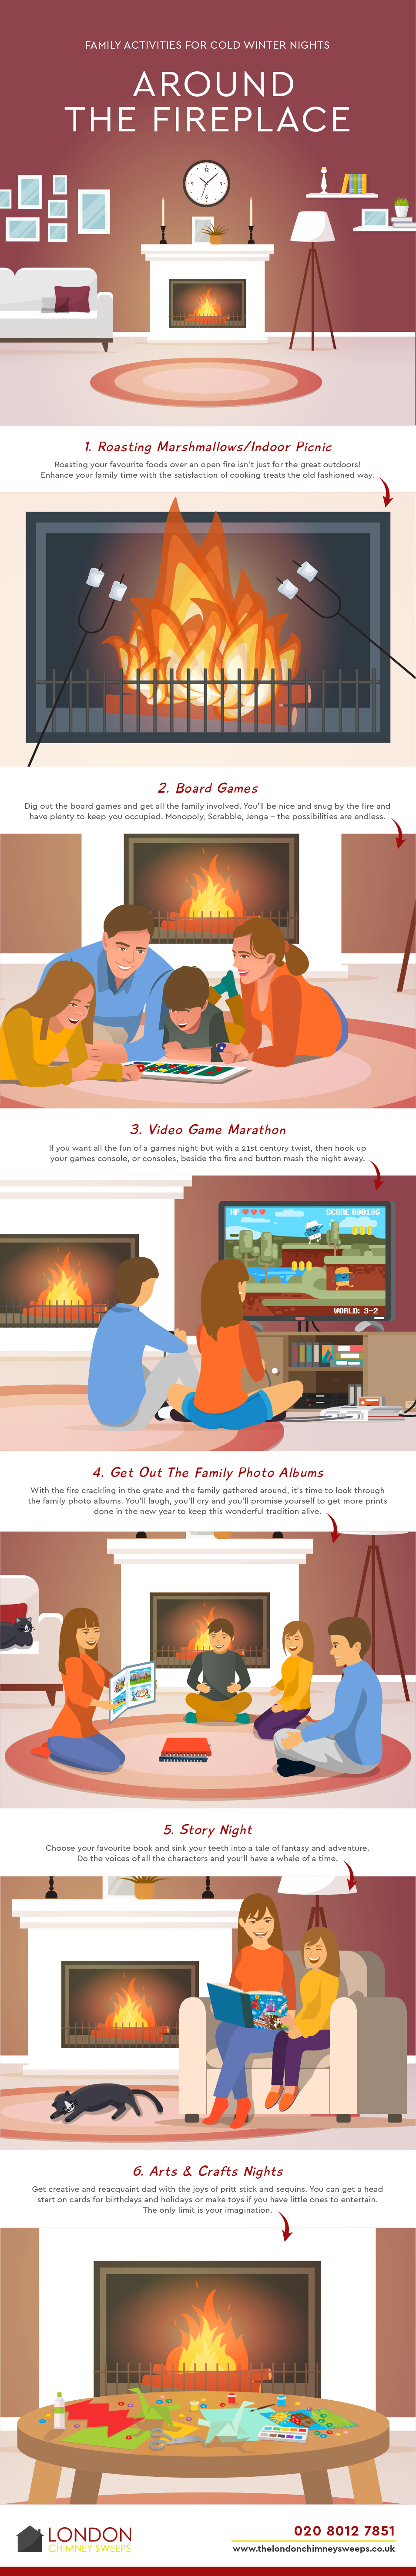 Infographic showing family activities for around the fireplace